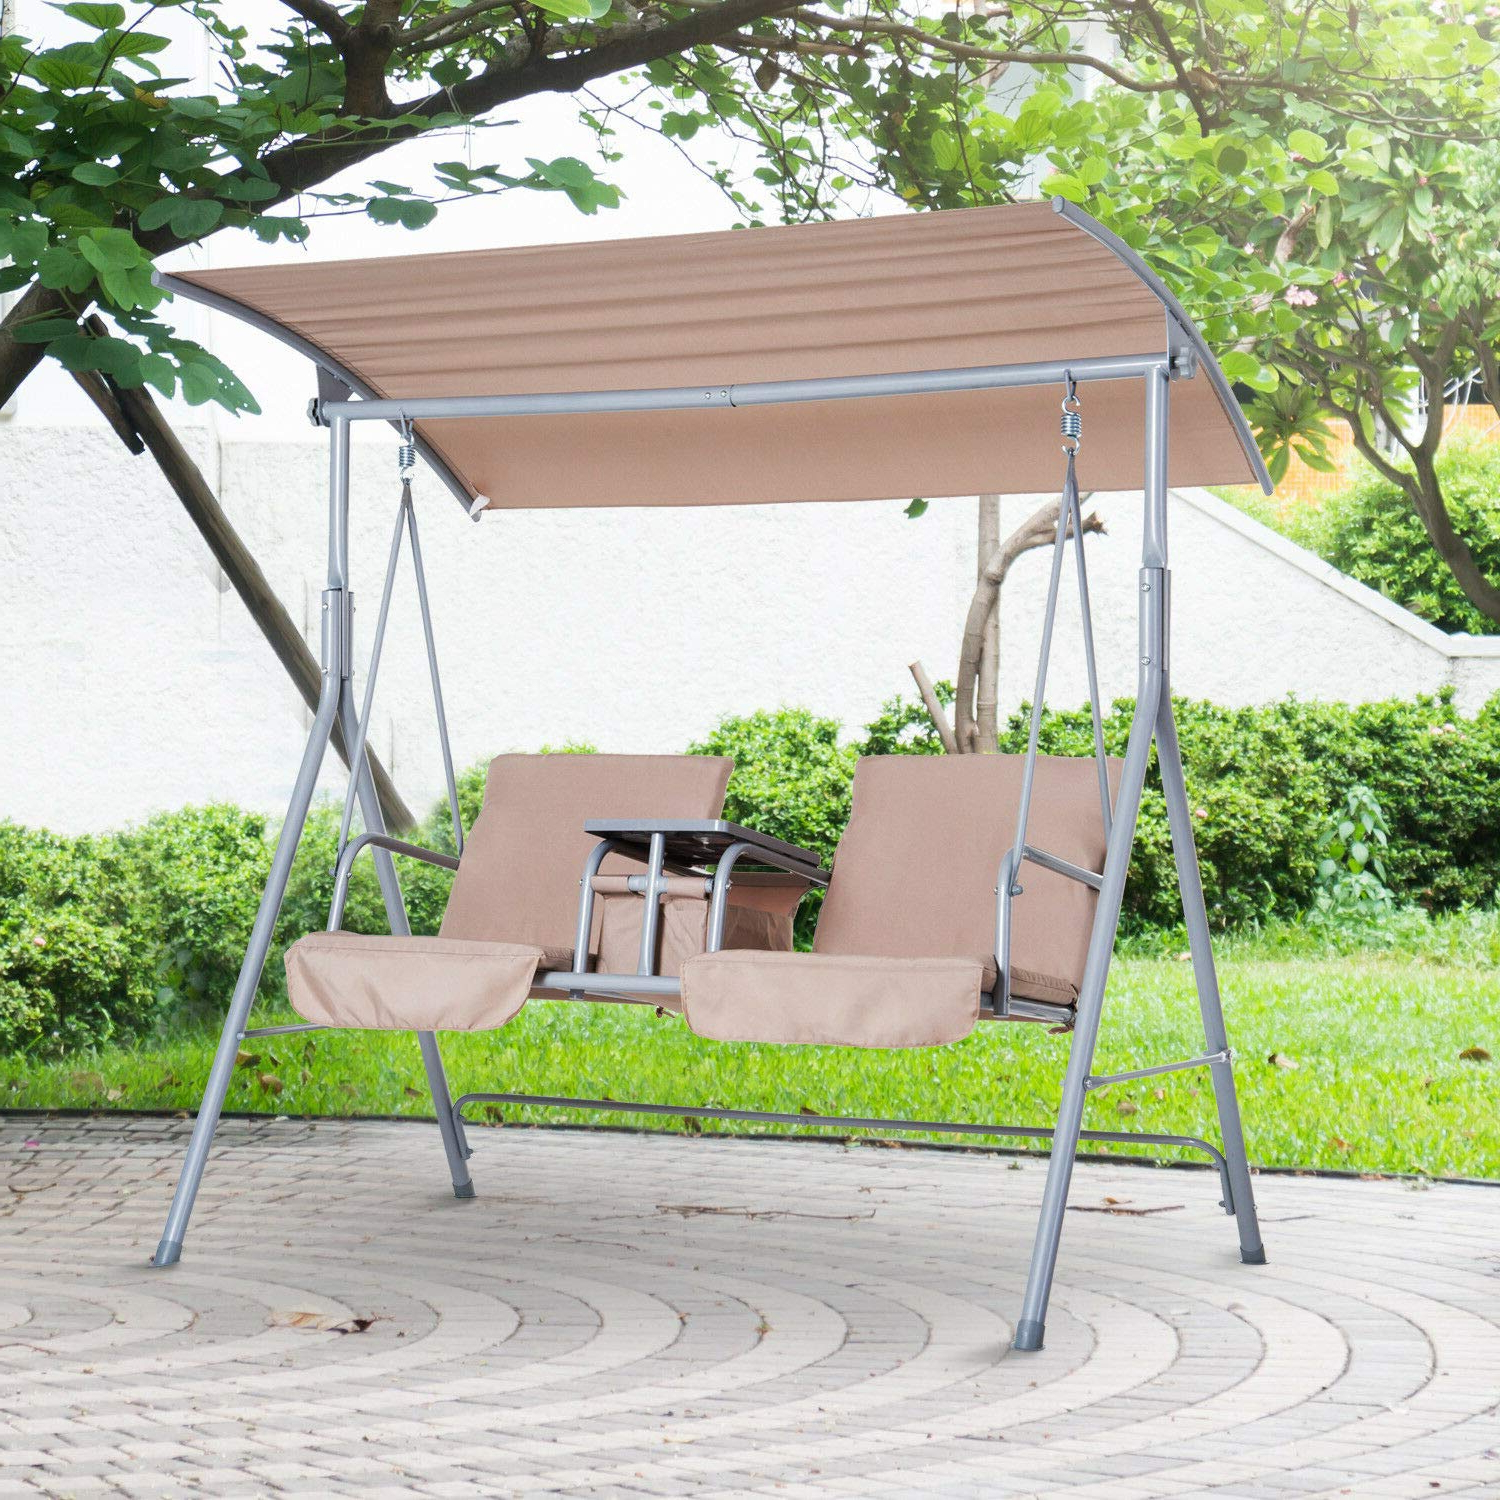 Trendy Patio Porch Swings With Stand In Amazon : Mb Campstar 2 Person Outdoor Patio Porch Swing (Gallery 7 of 30)